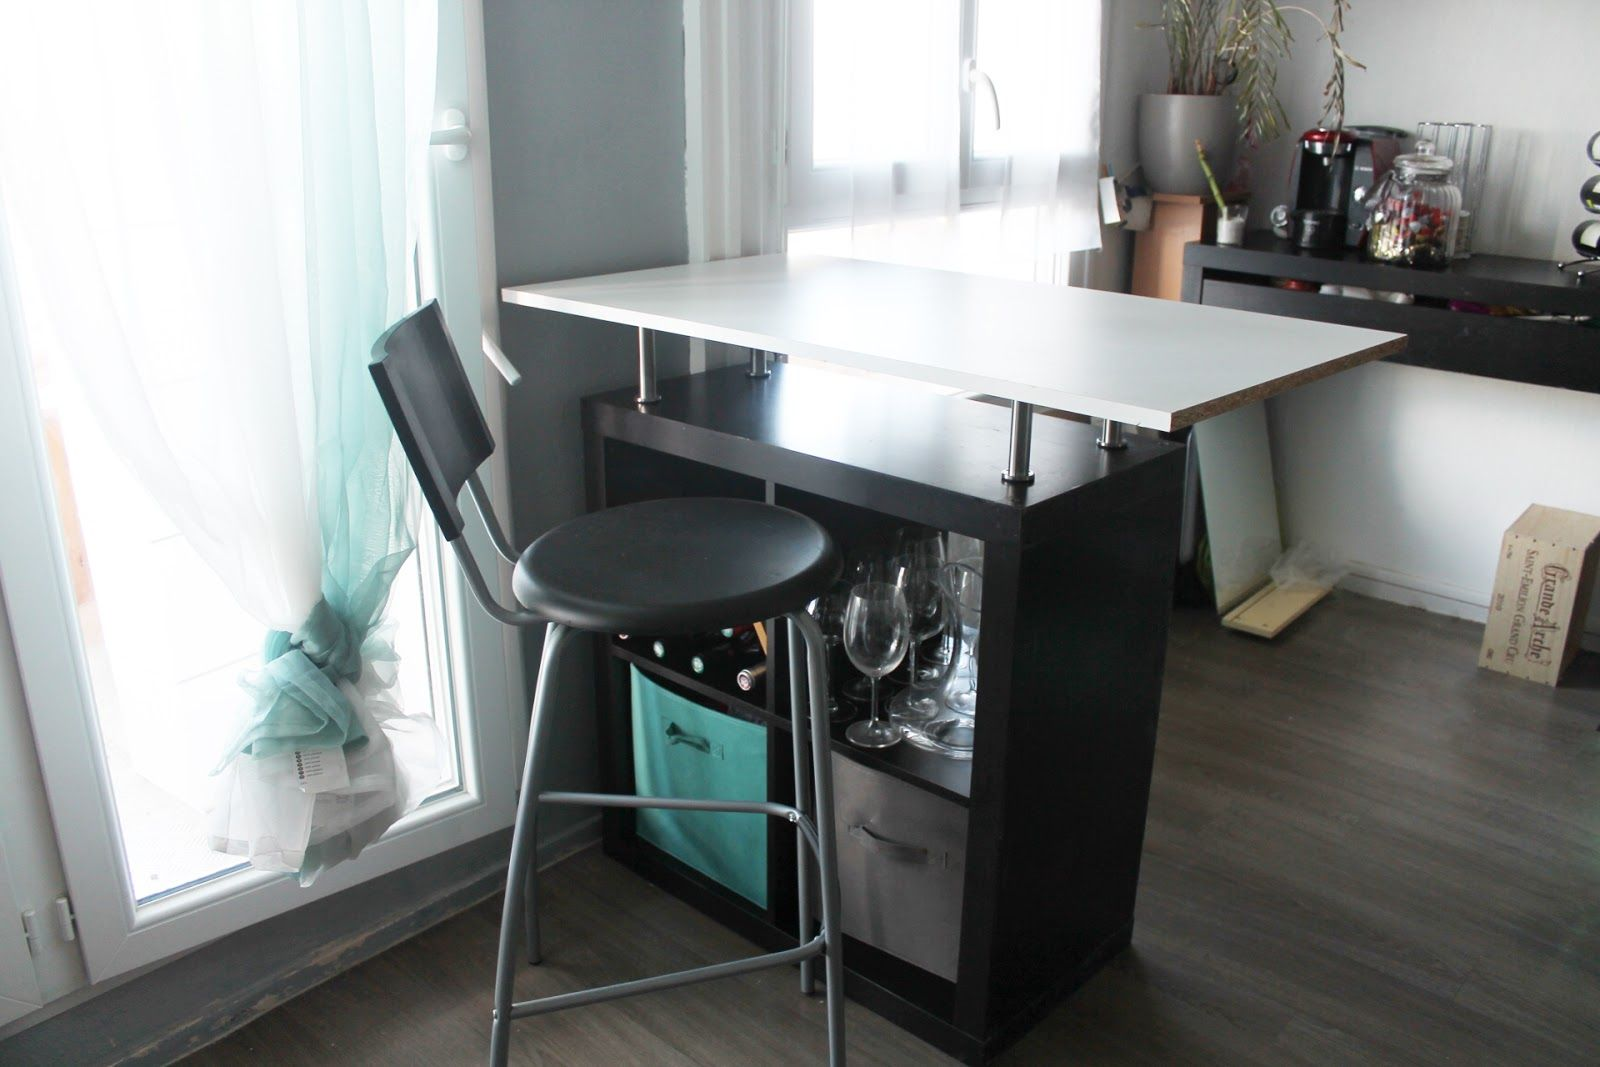 Transformer un meuble ikea en bar bureau pinterest for Meuble sous bar